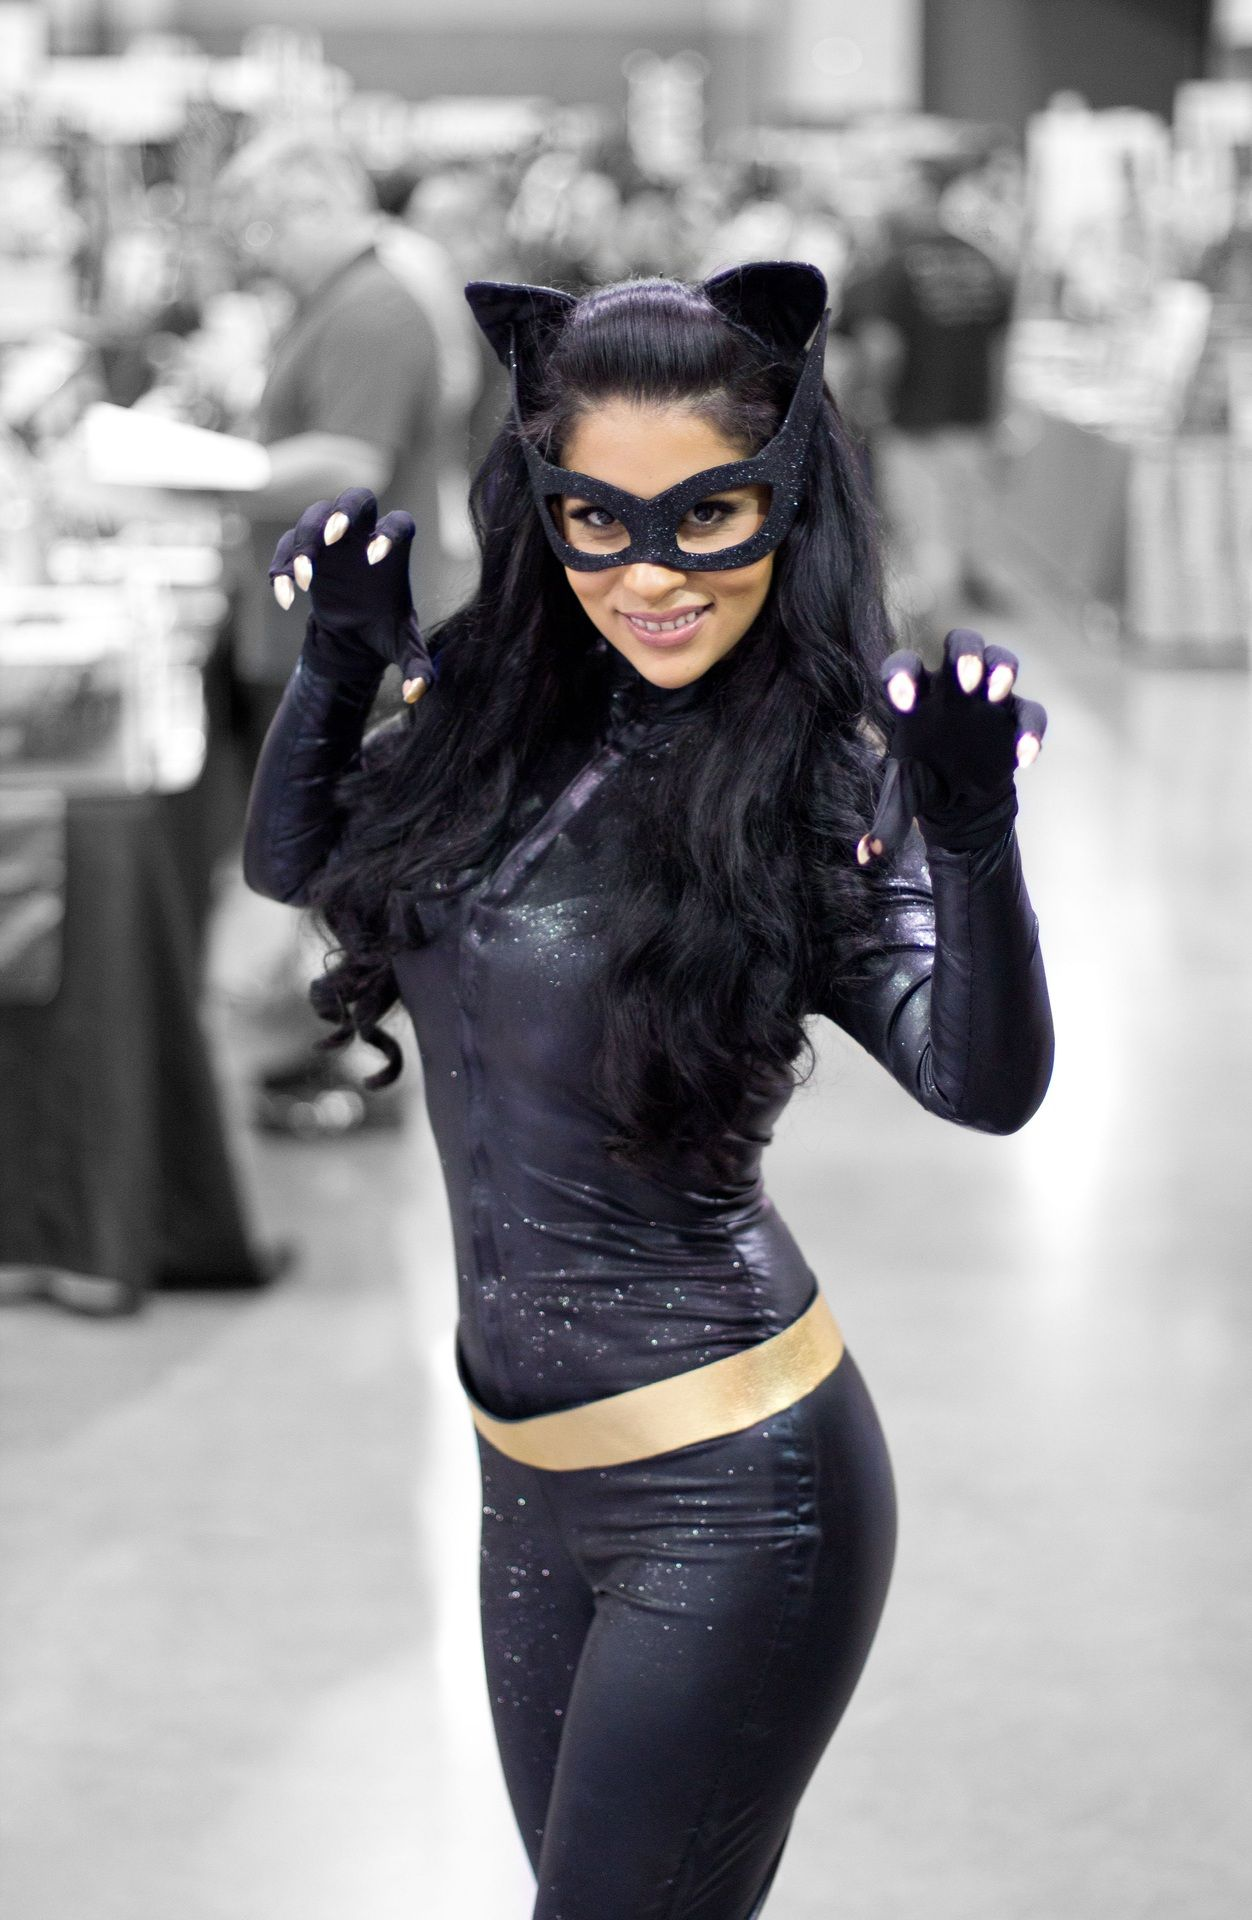 Batman And Catwoman Halloween Costumes.Me As 1960s Batman Movie Catwoman Halloween Costumes Girl